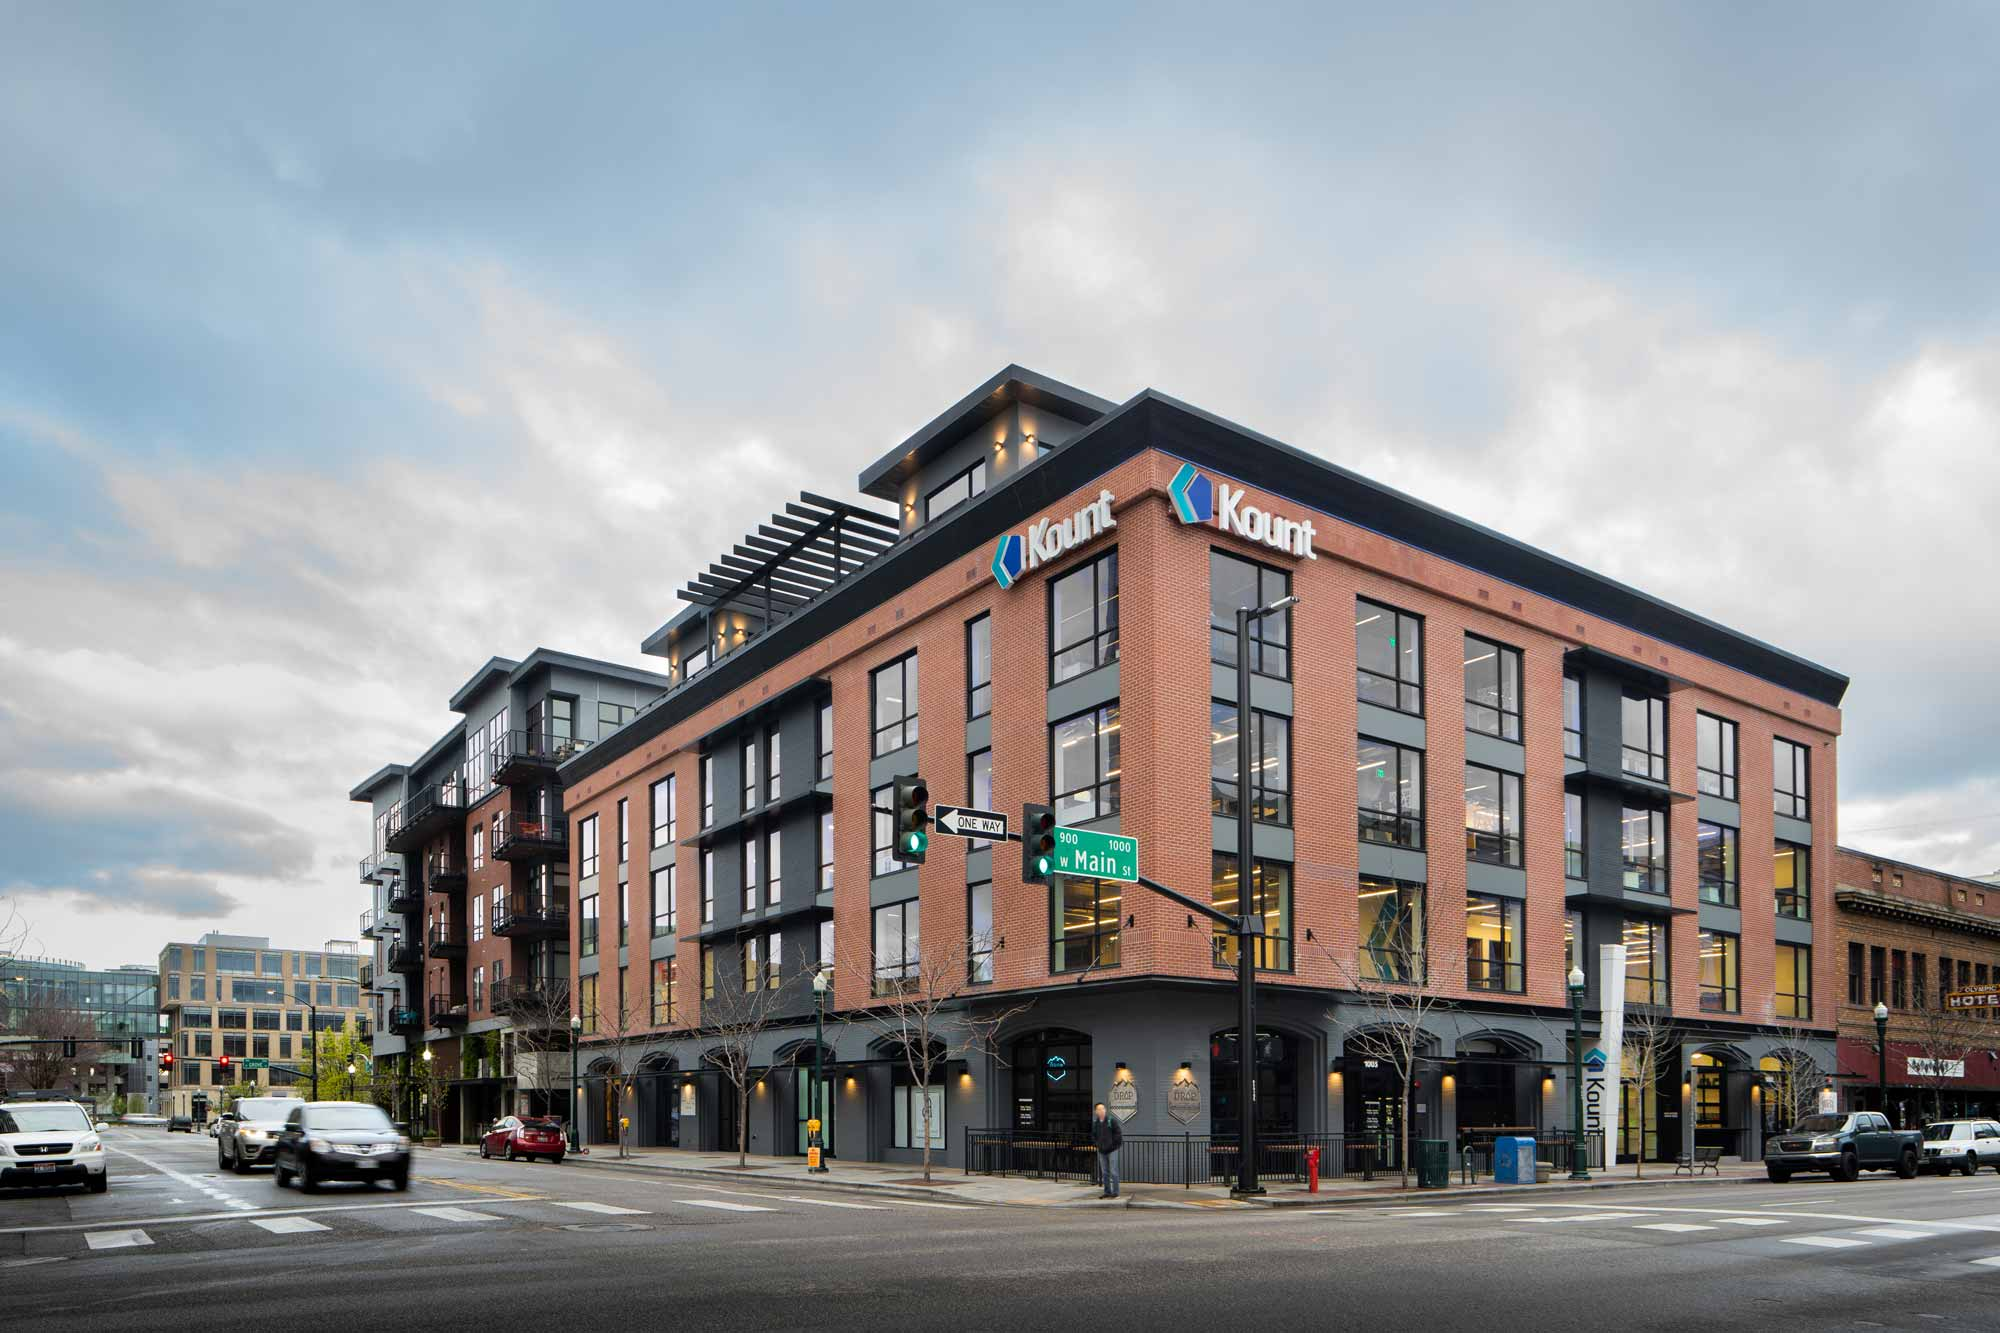 Tenth and Main Revitalization